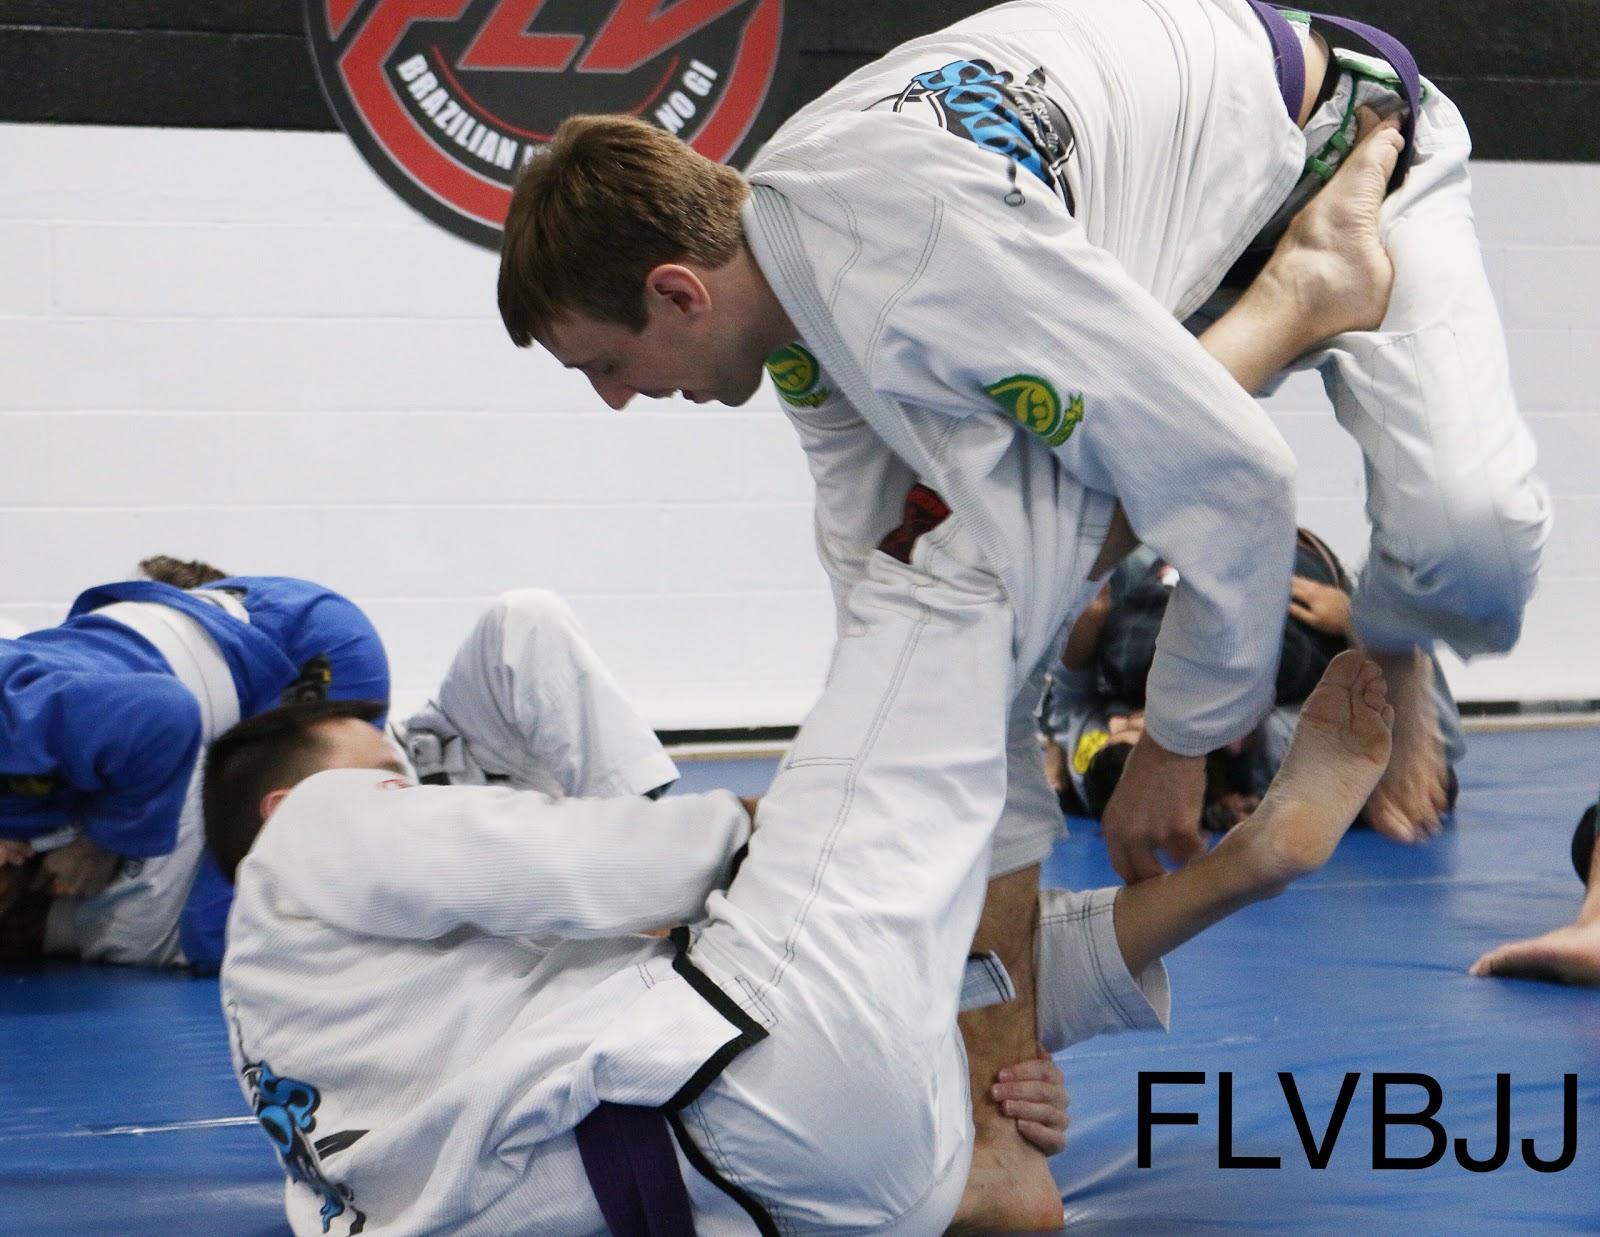 ATOS JIU JITSU Of CHARLOTTE - photo